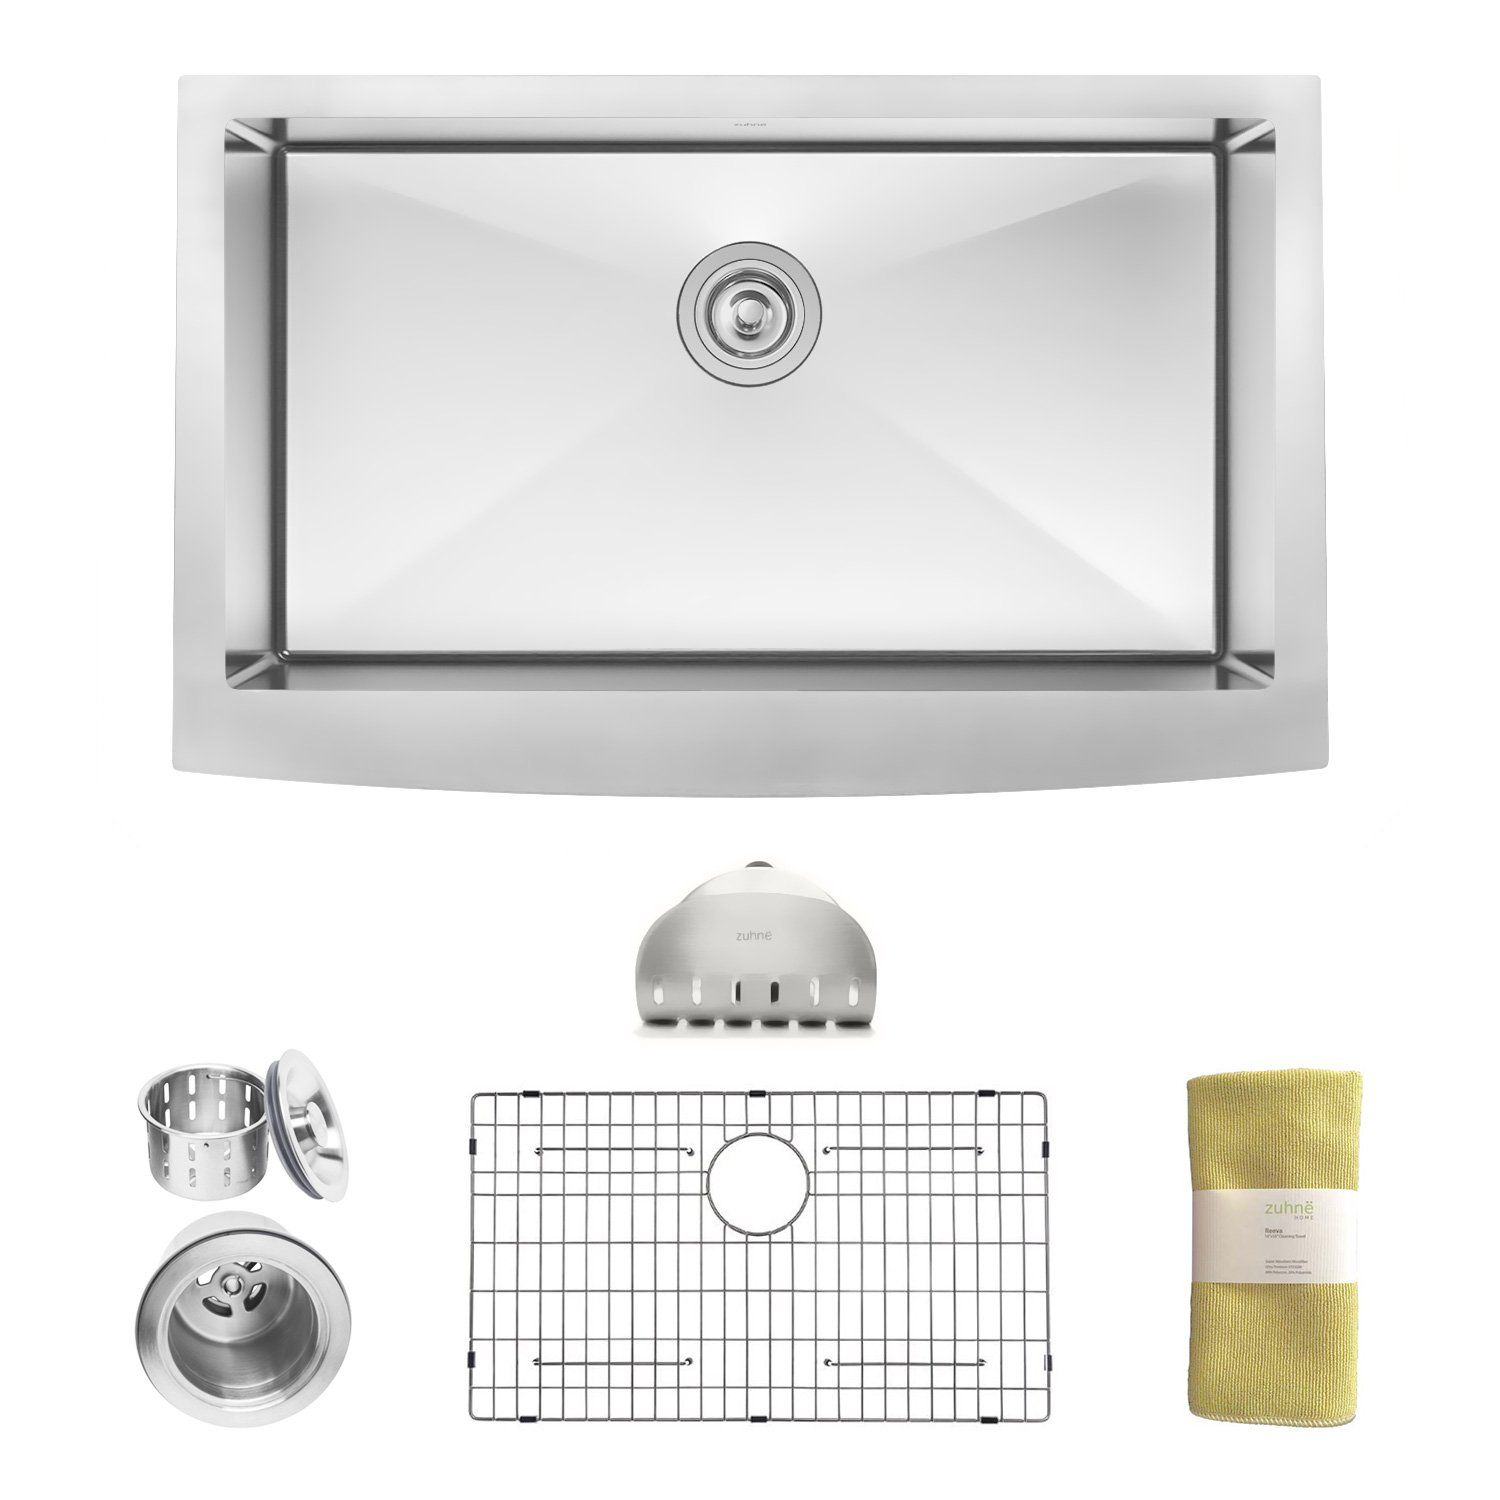 Zuhne 33 Inch Farmhouse Apron Deep Single Bowl 16 Gauge Stainless Steel Luxury Kitch Apron Front Stainless Steel Kitchen Sink Stainless Steel Kitchen Sink Sink